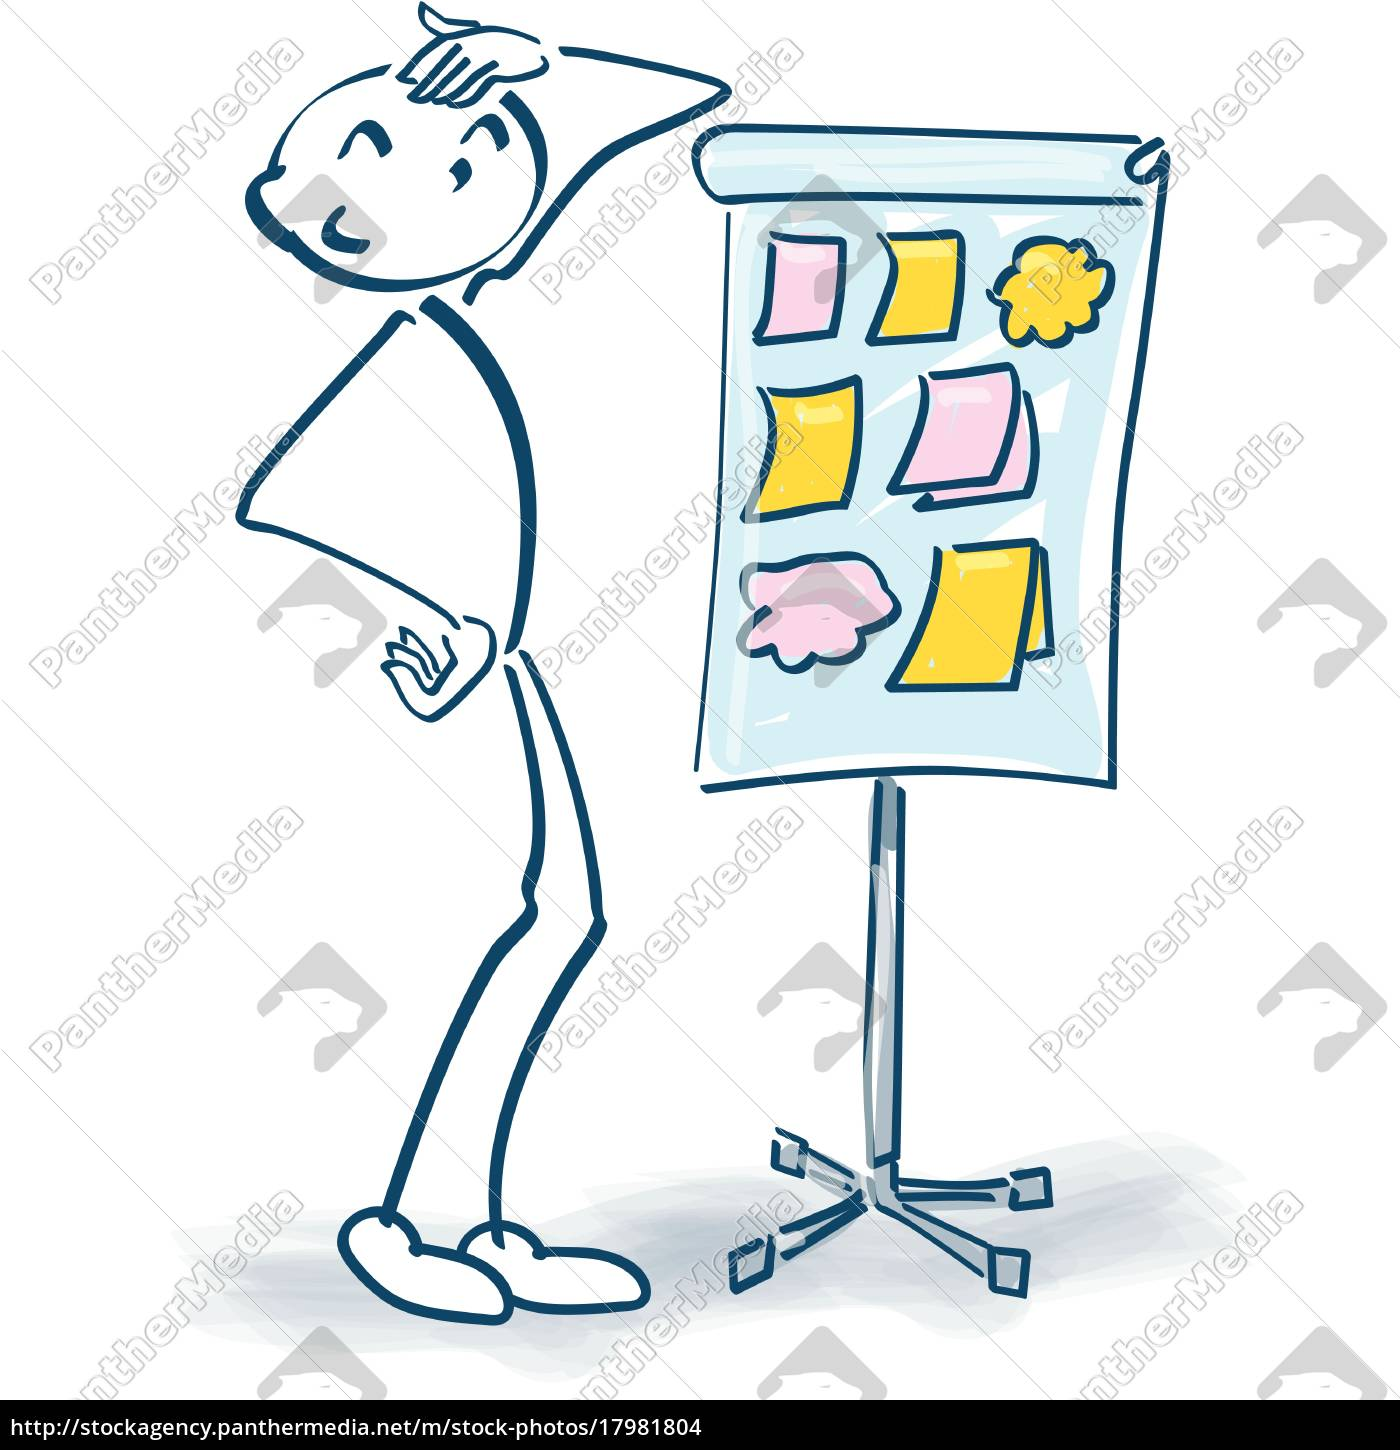 Flipchart PNG and Flipchart Transparent Clipart Free Download. - CleanPNG /  KissPNG